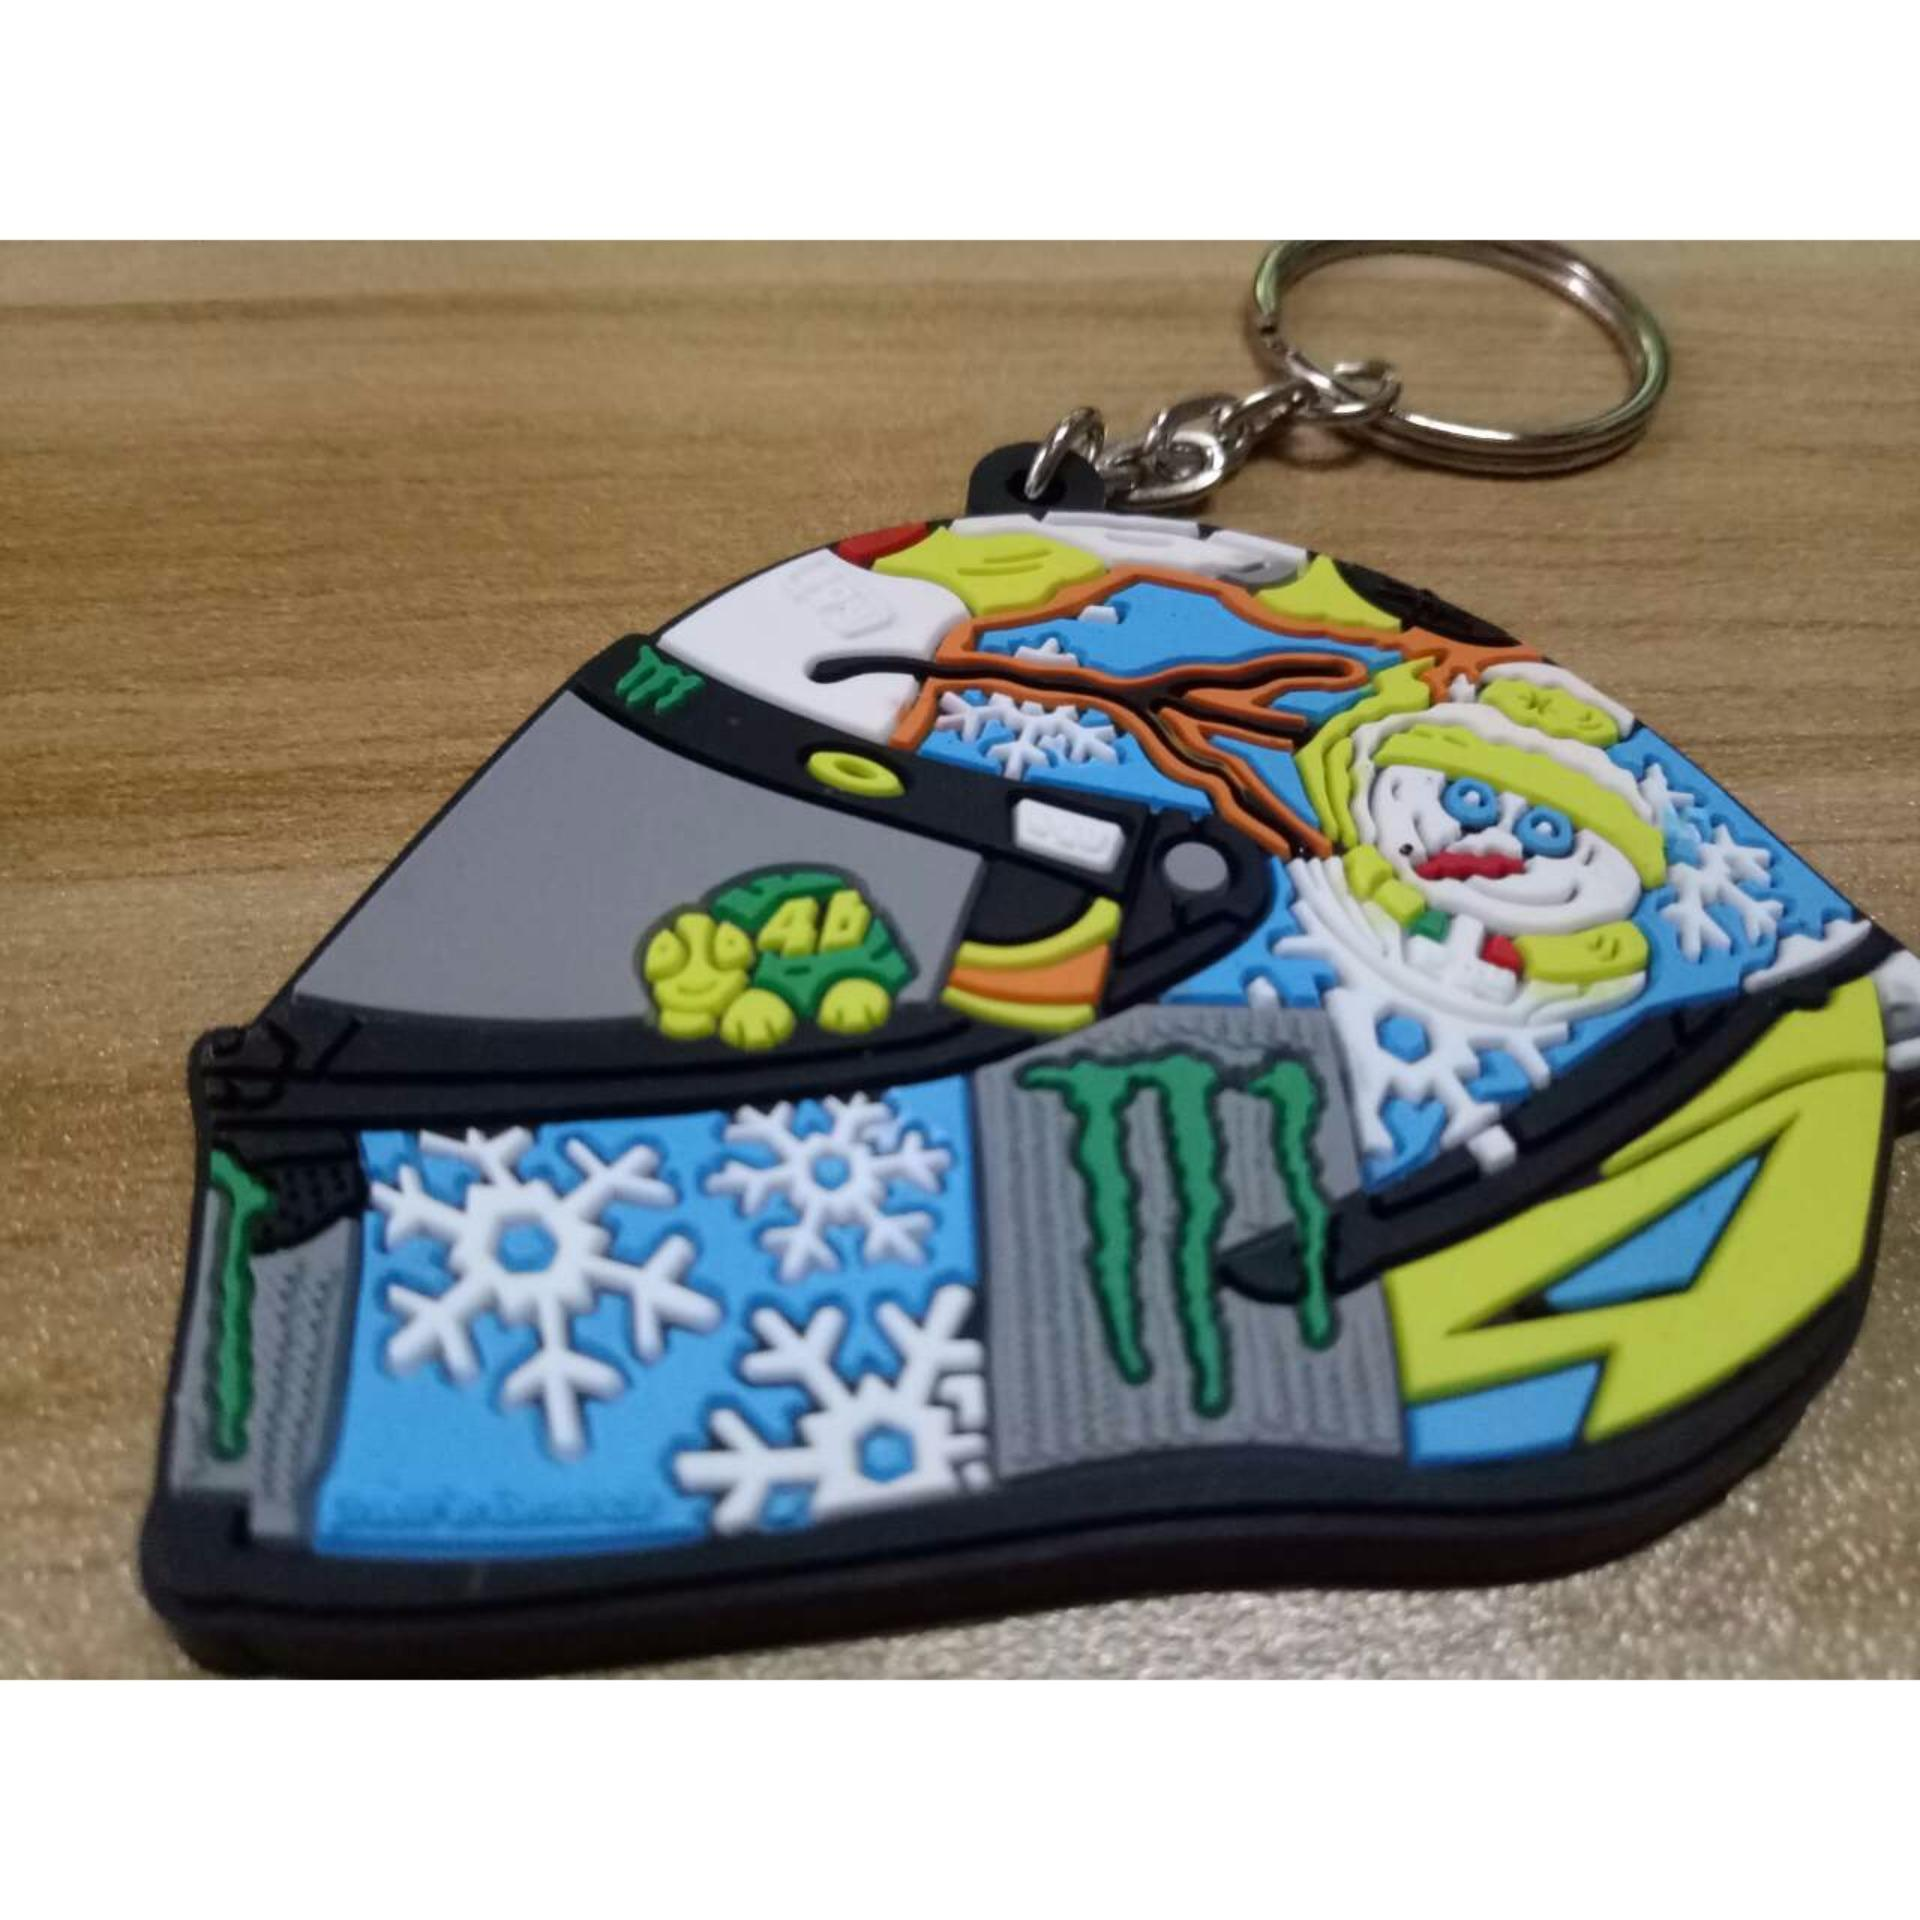 MEN MOVIE Best Quality Product Deals Source Fortress Motorcycle bike Keychain Accessories Casual .